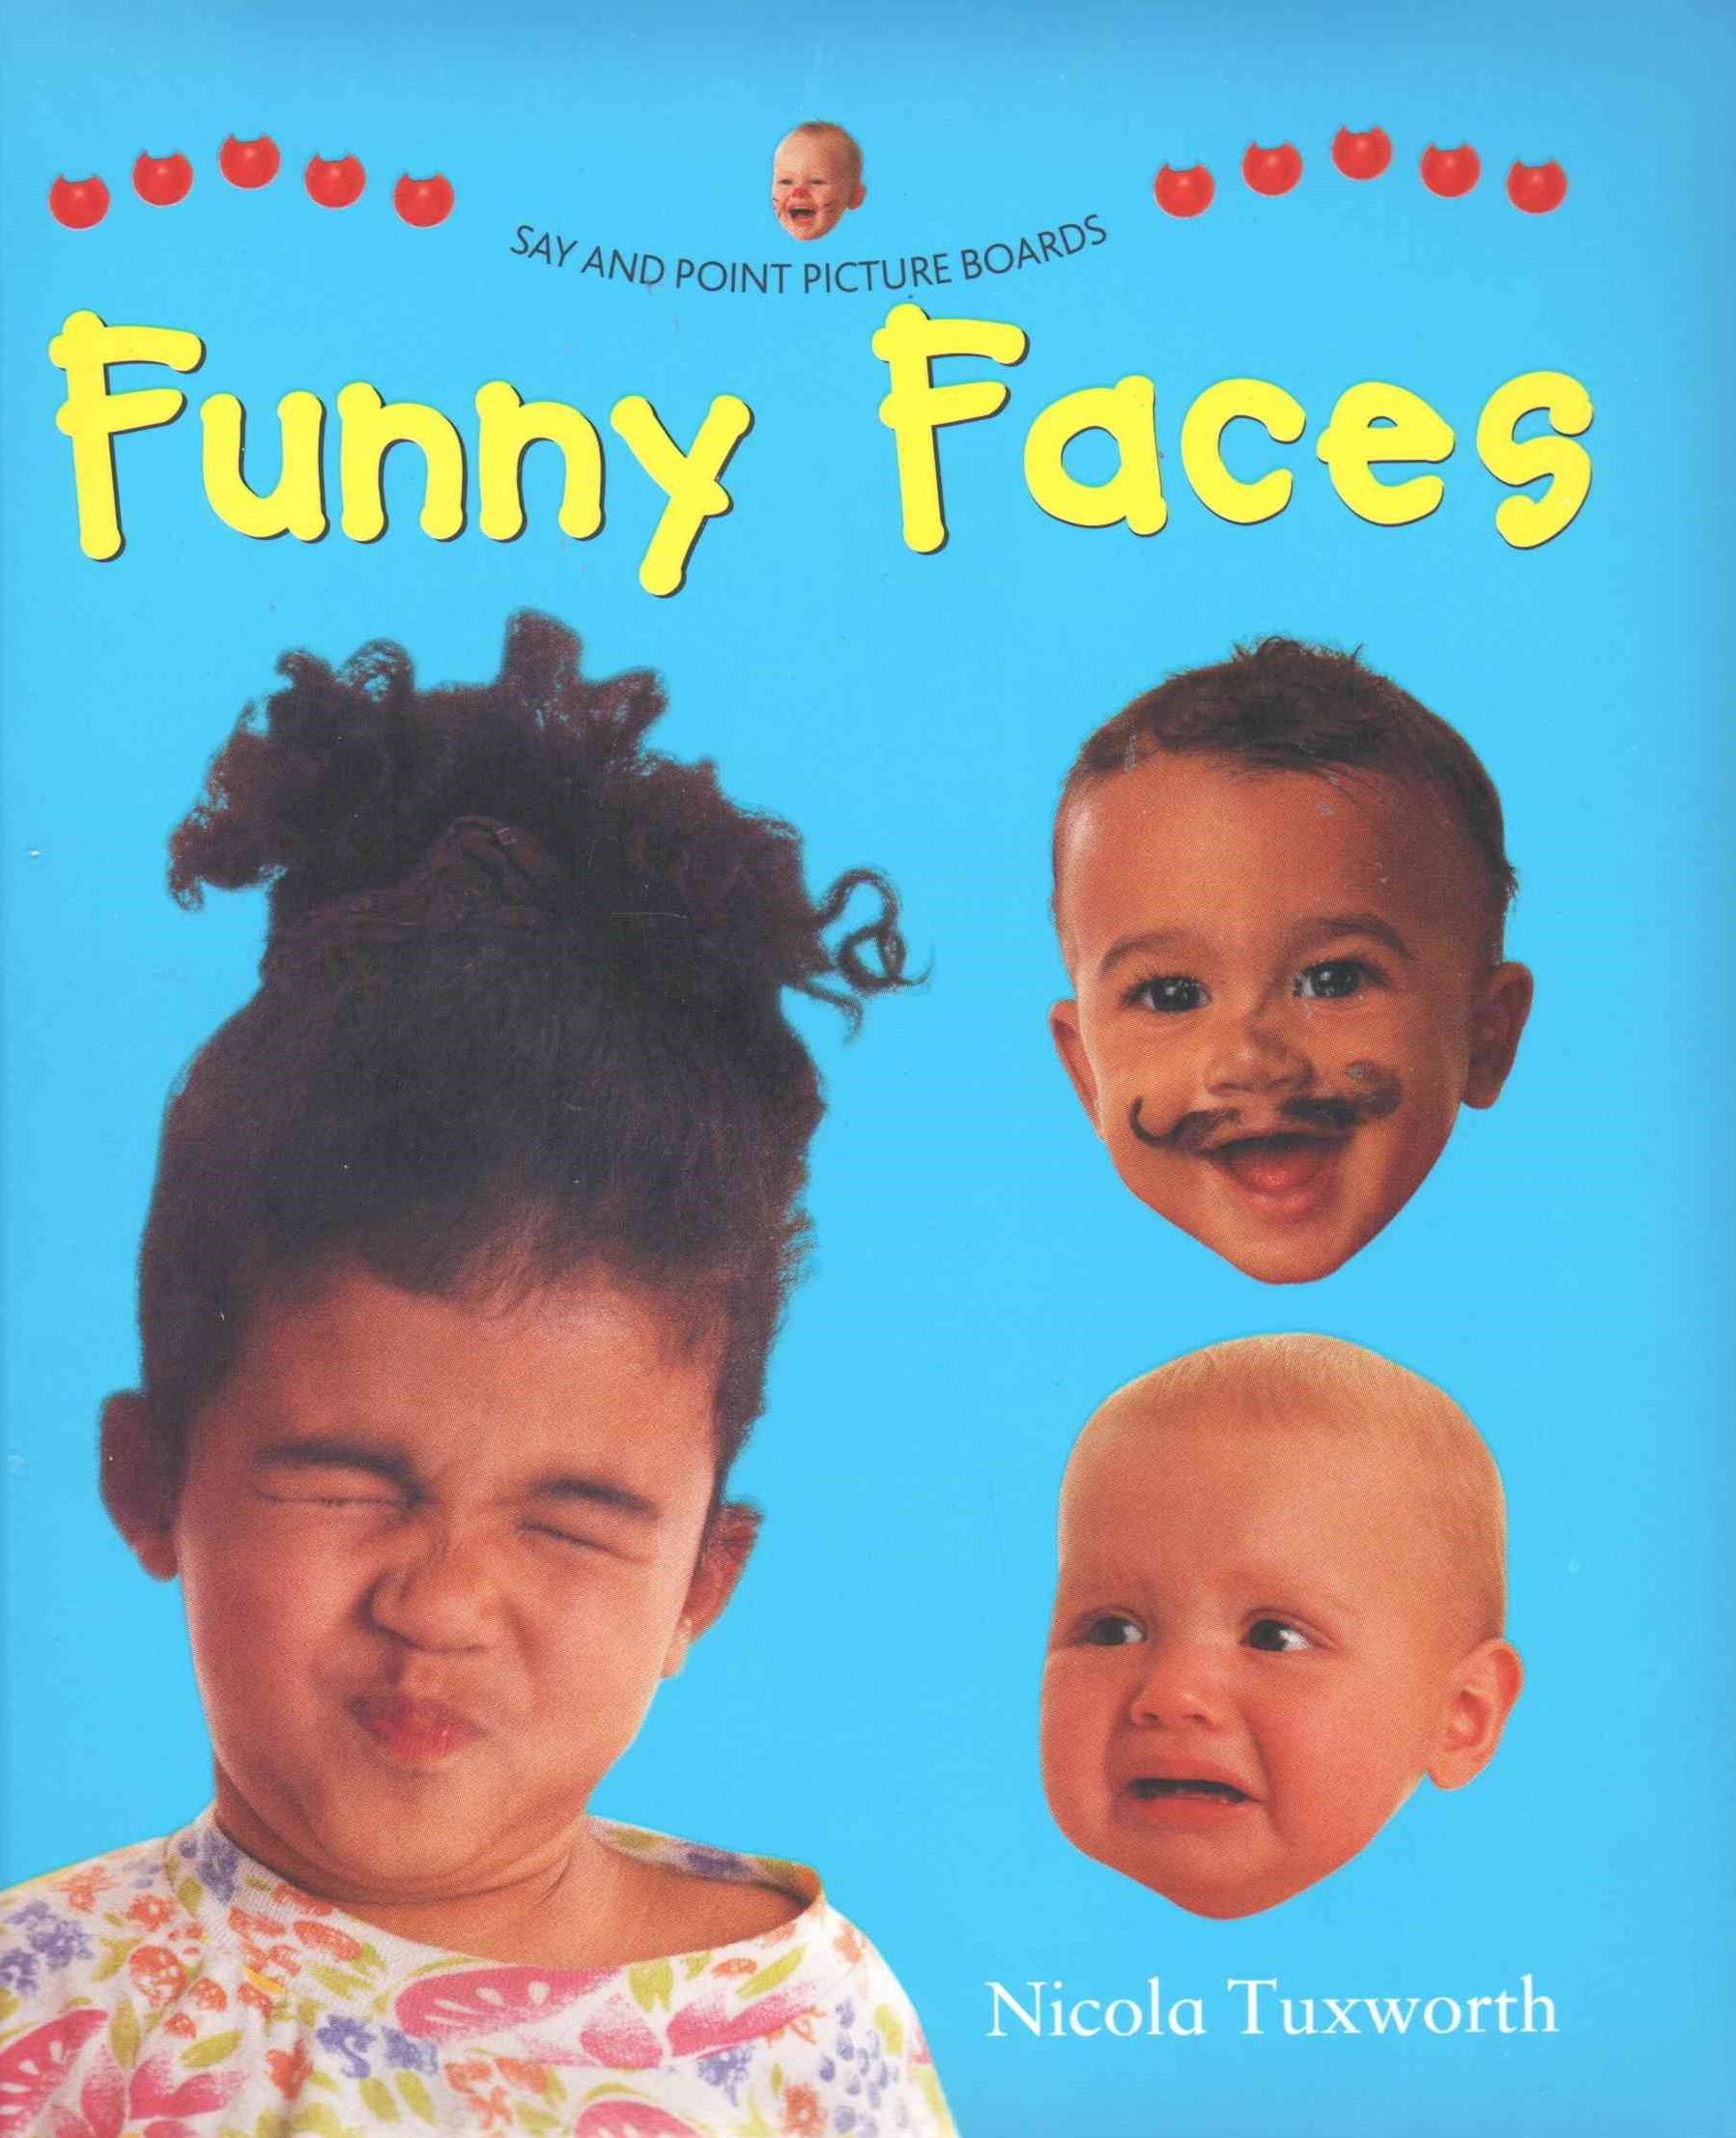 Say and Point Picture Boards: Funny Faces